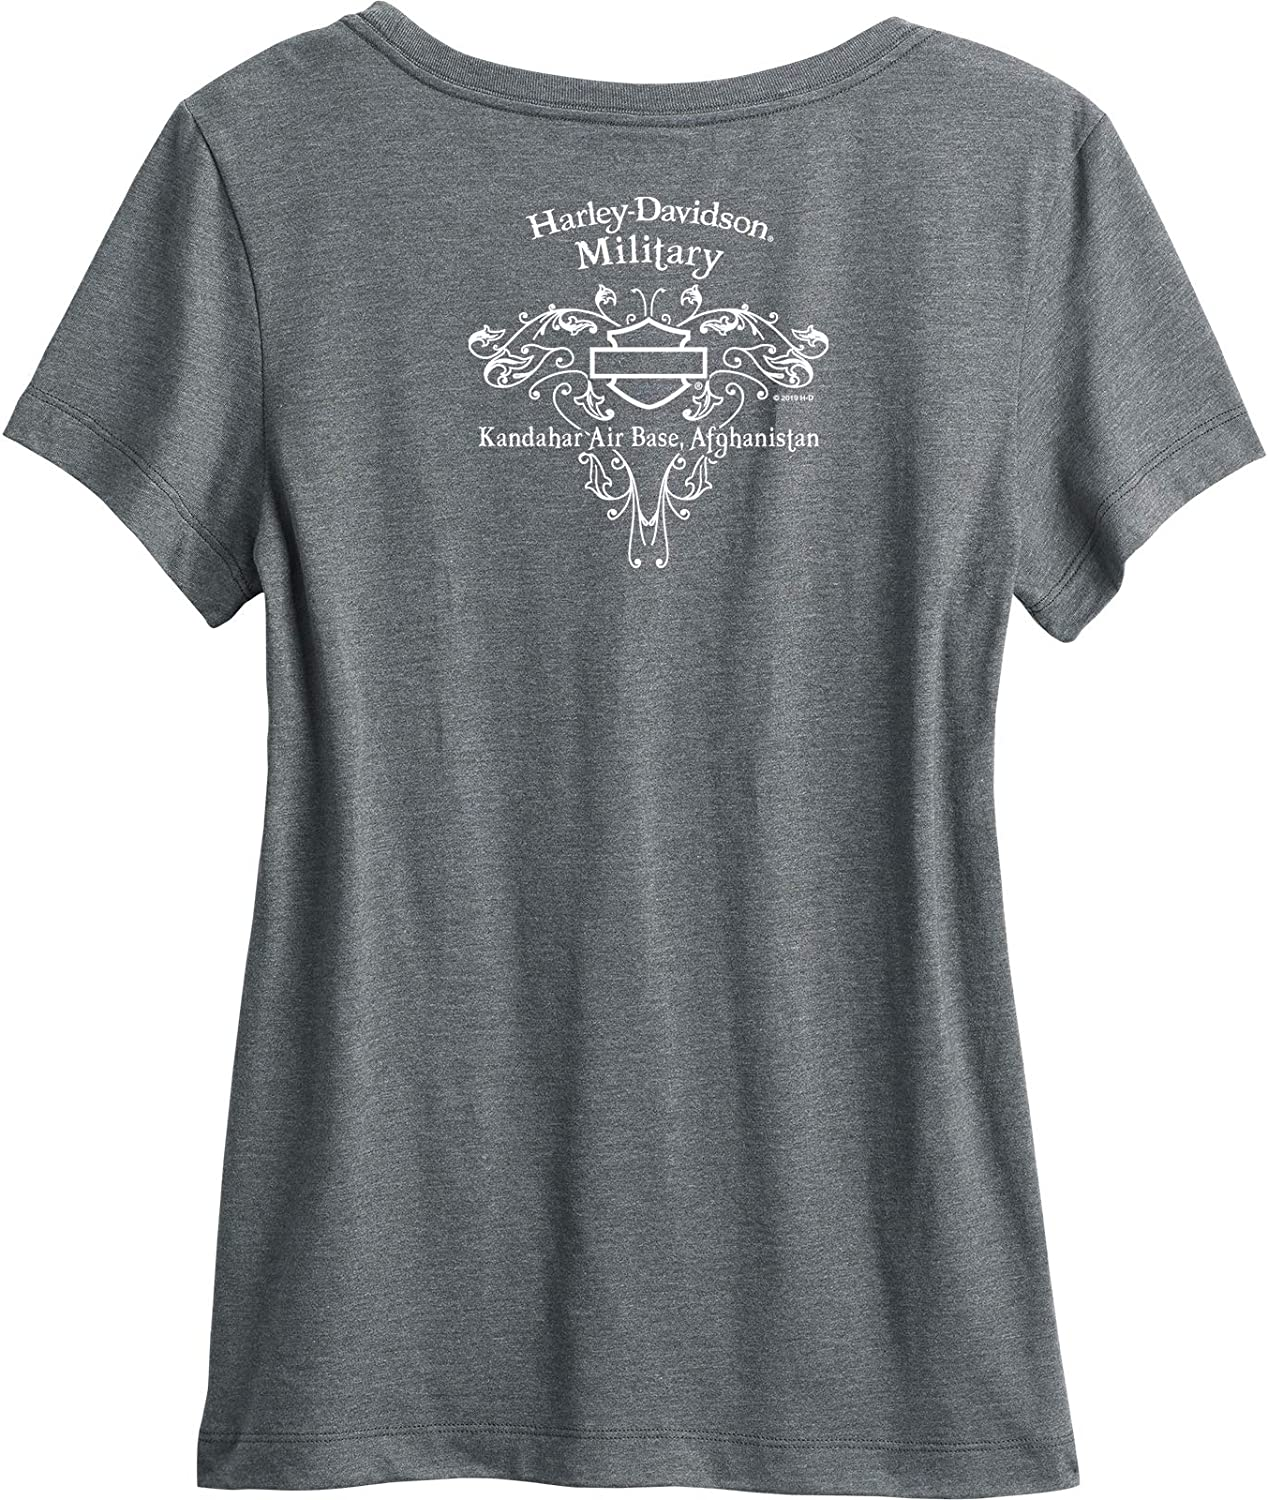 Fused Womens Scoop Neck Foil Graphic T-Shirt Kandahar AB HARLEY-DAVIDSON Military